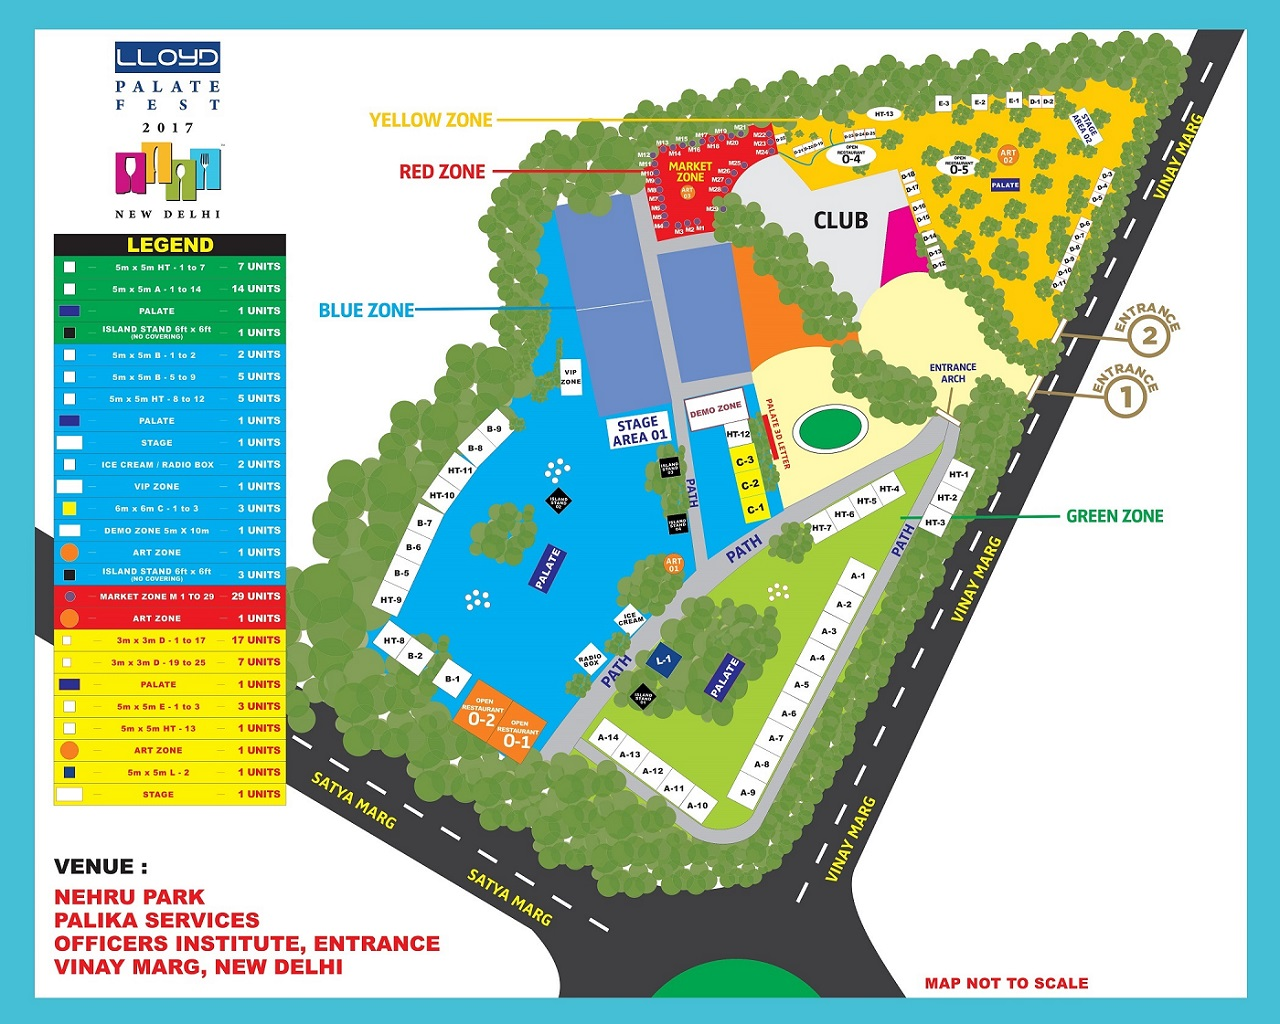 Map of Palate Fest